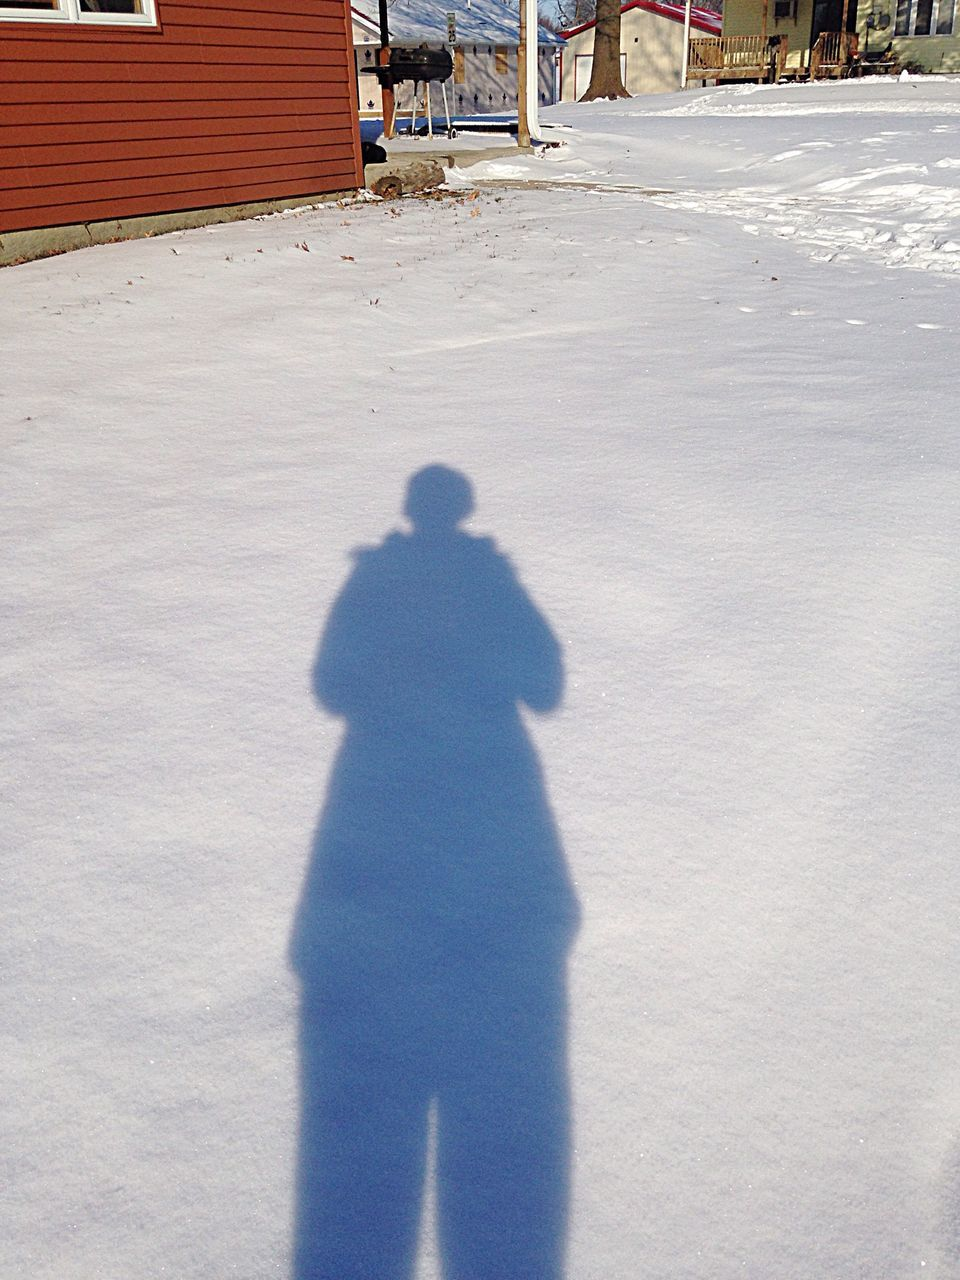 High Angle View Of Person Shadow On Snow Covered Street